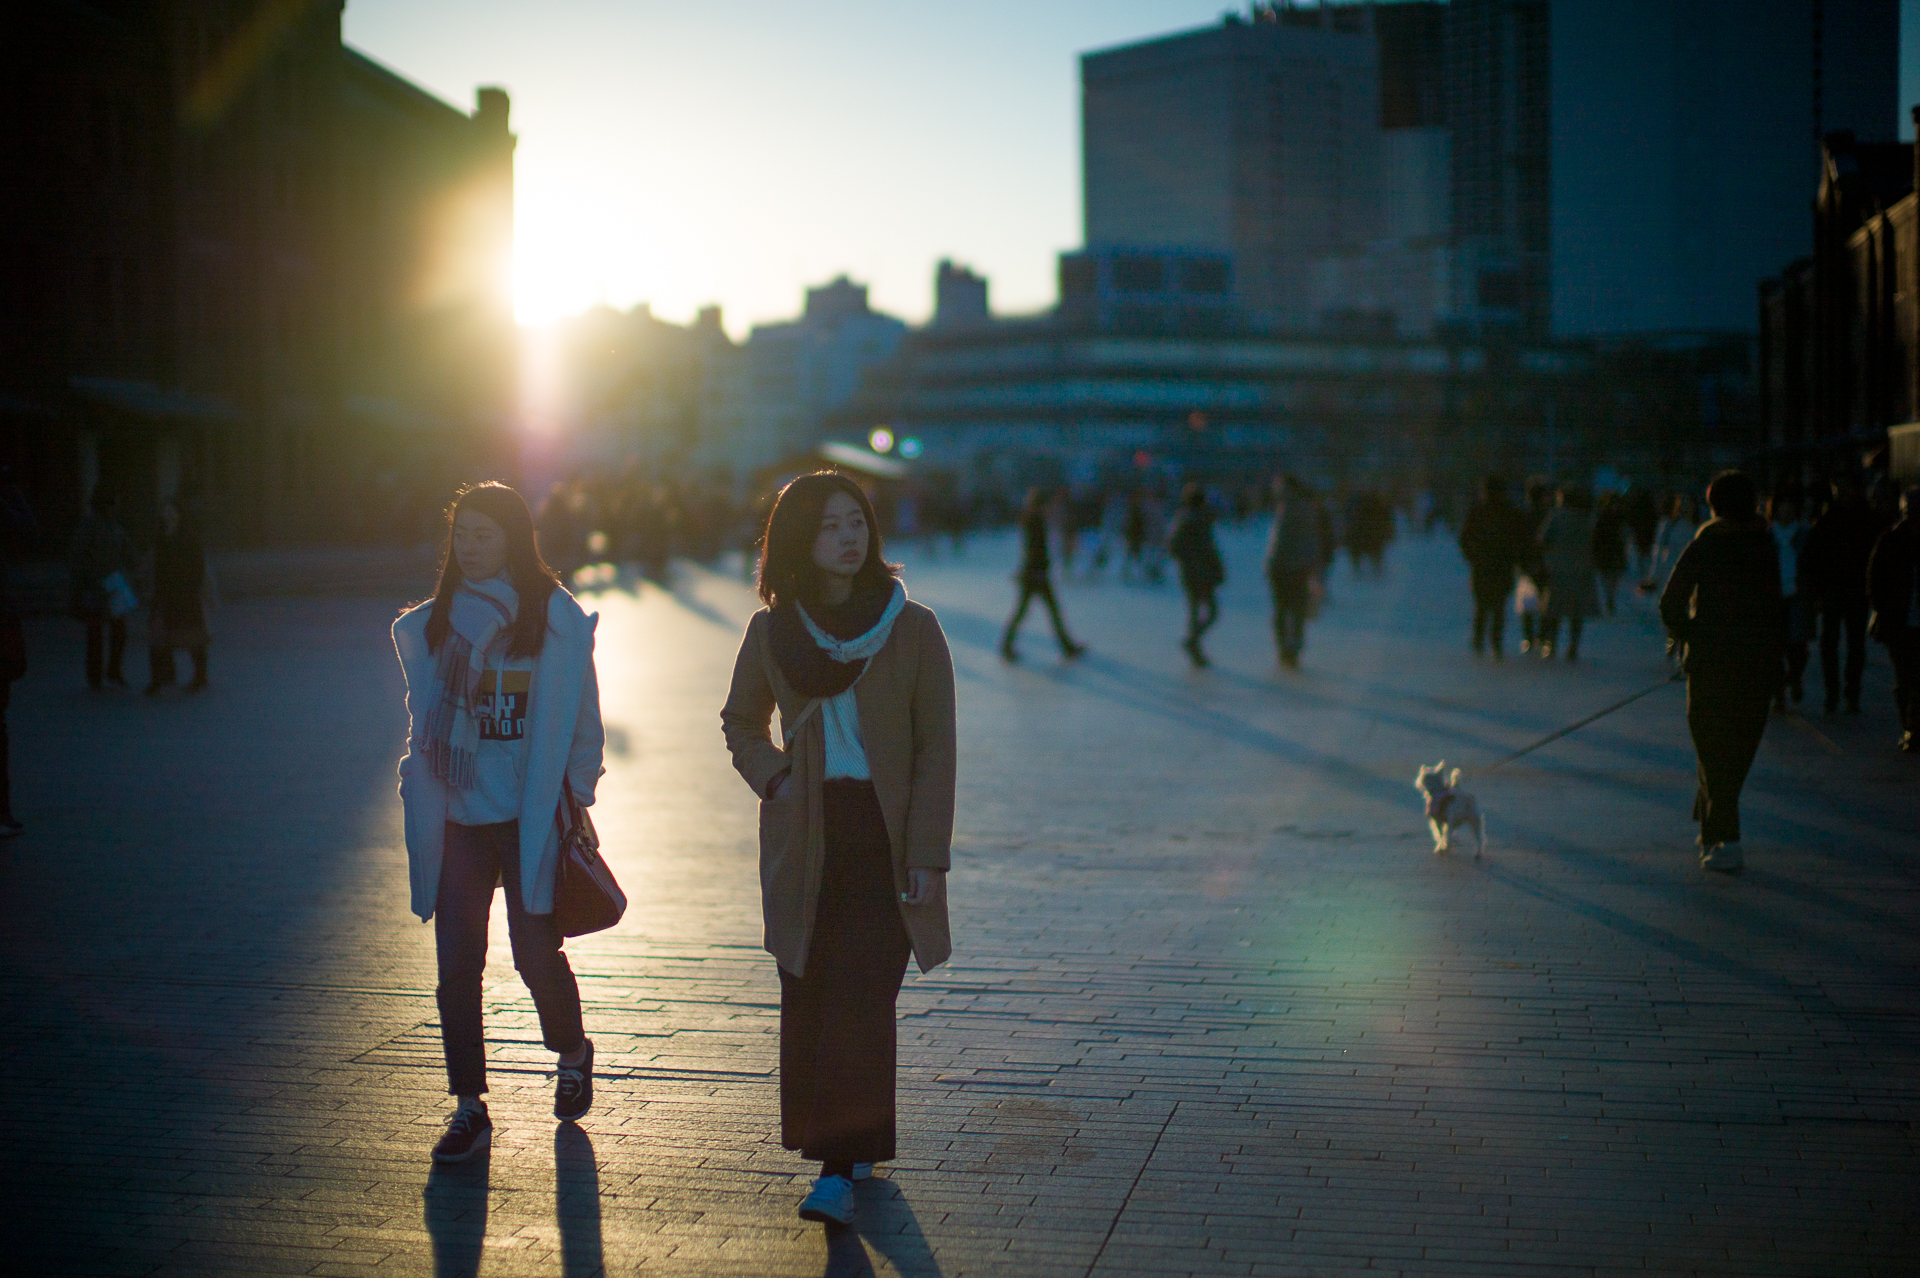 Girls and sunset in Yokohama © 2019 Jerry Yang